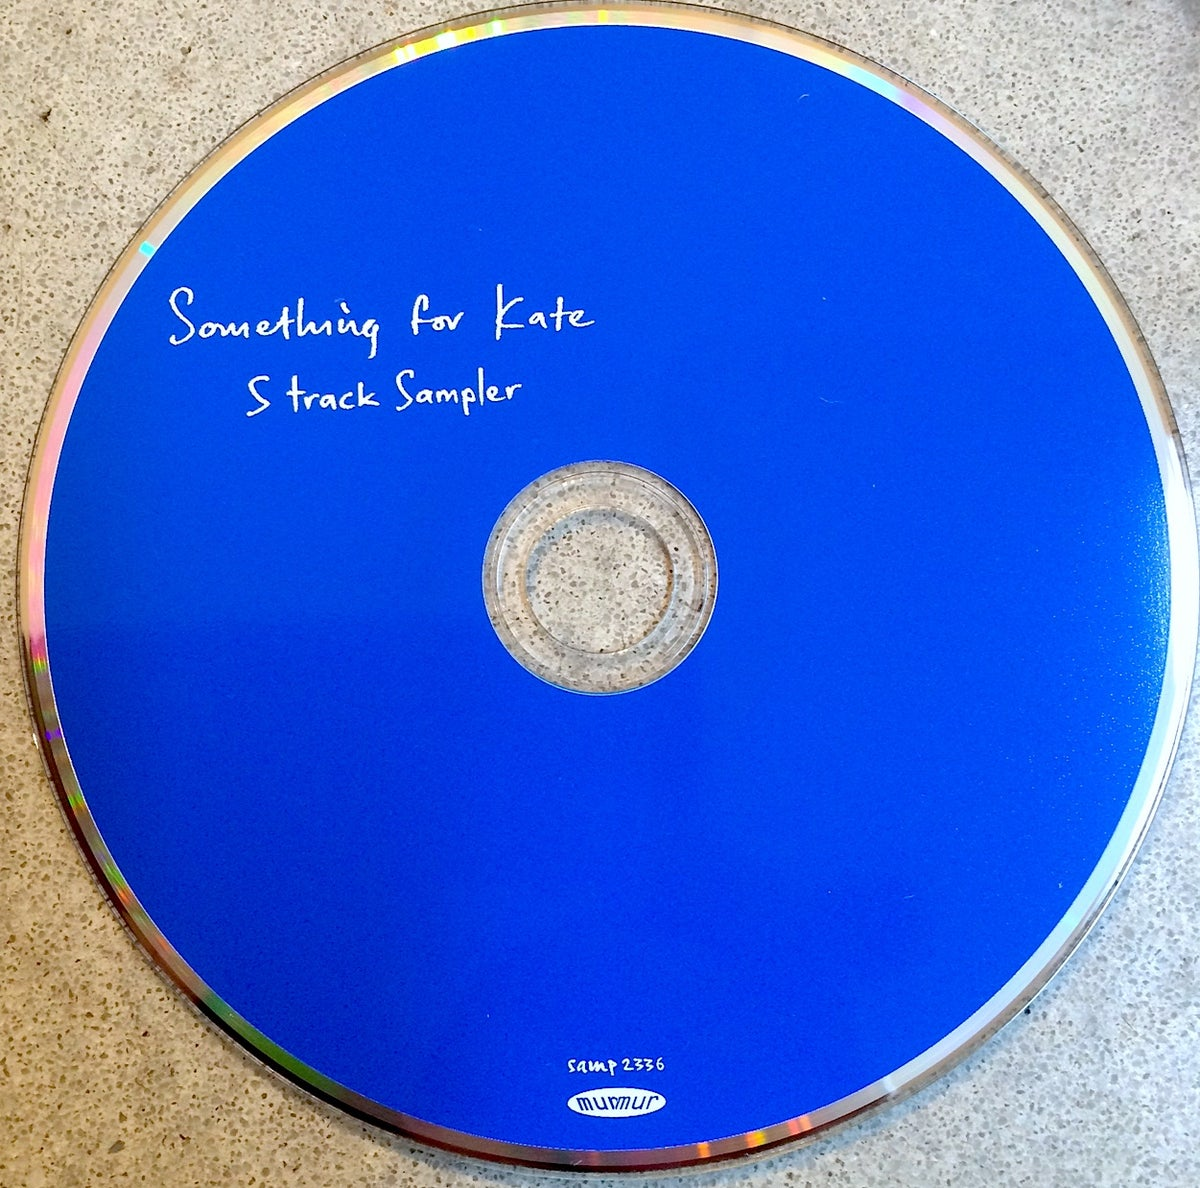 Image of Something for Kate - '5 track Sampler'